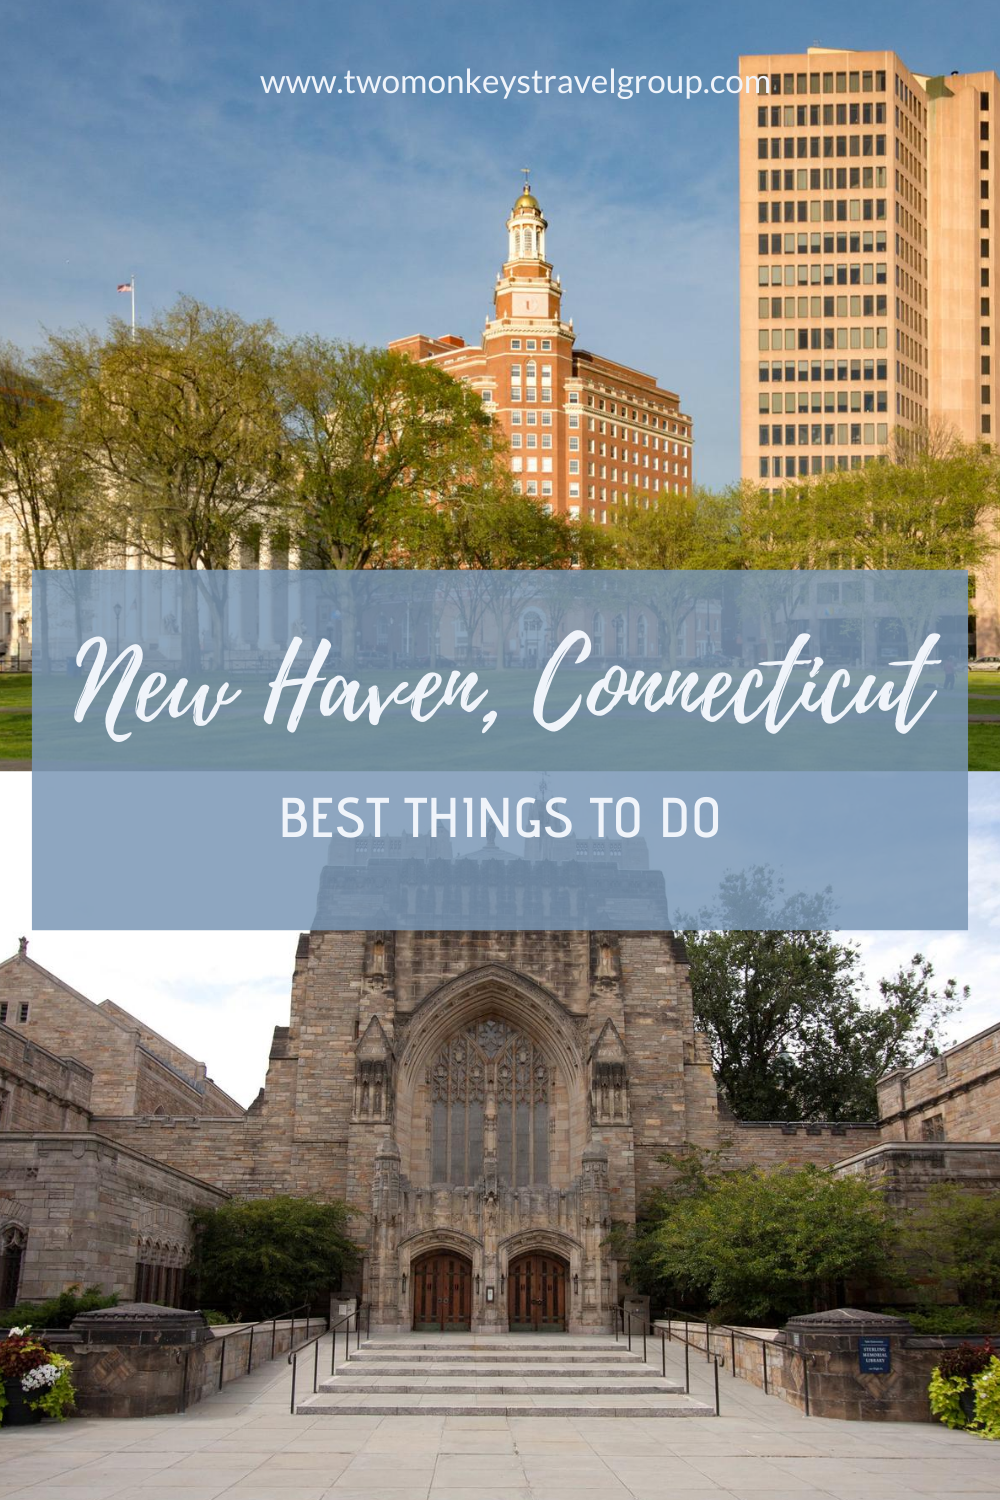 15 Things to do in New Haven, Connecticut [With Suggested Tours]2